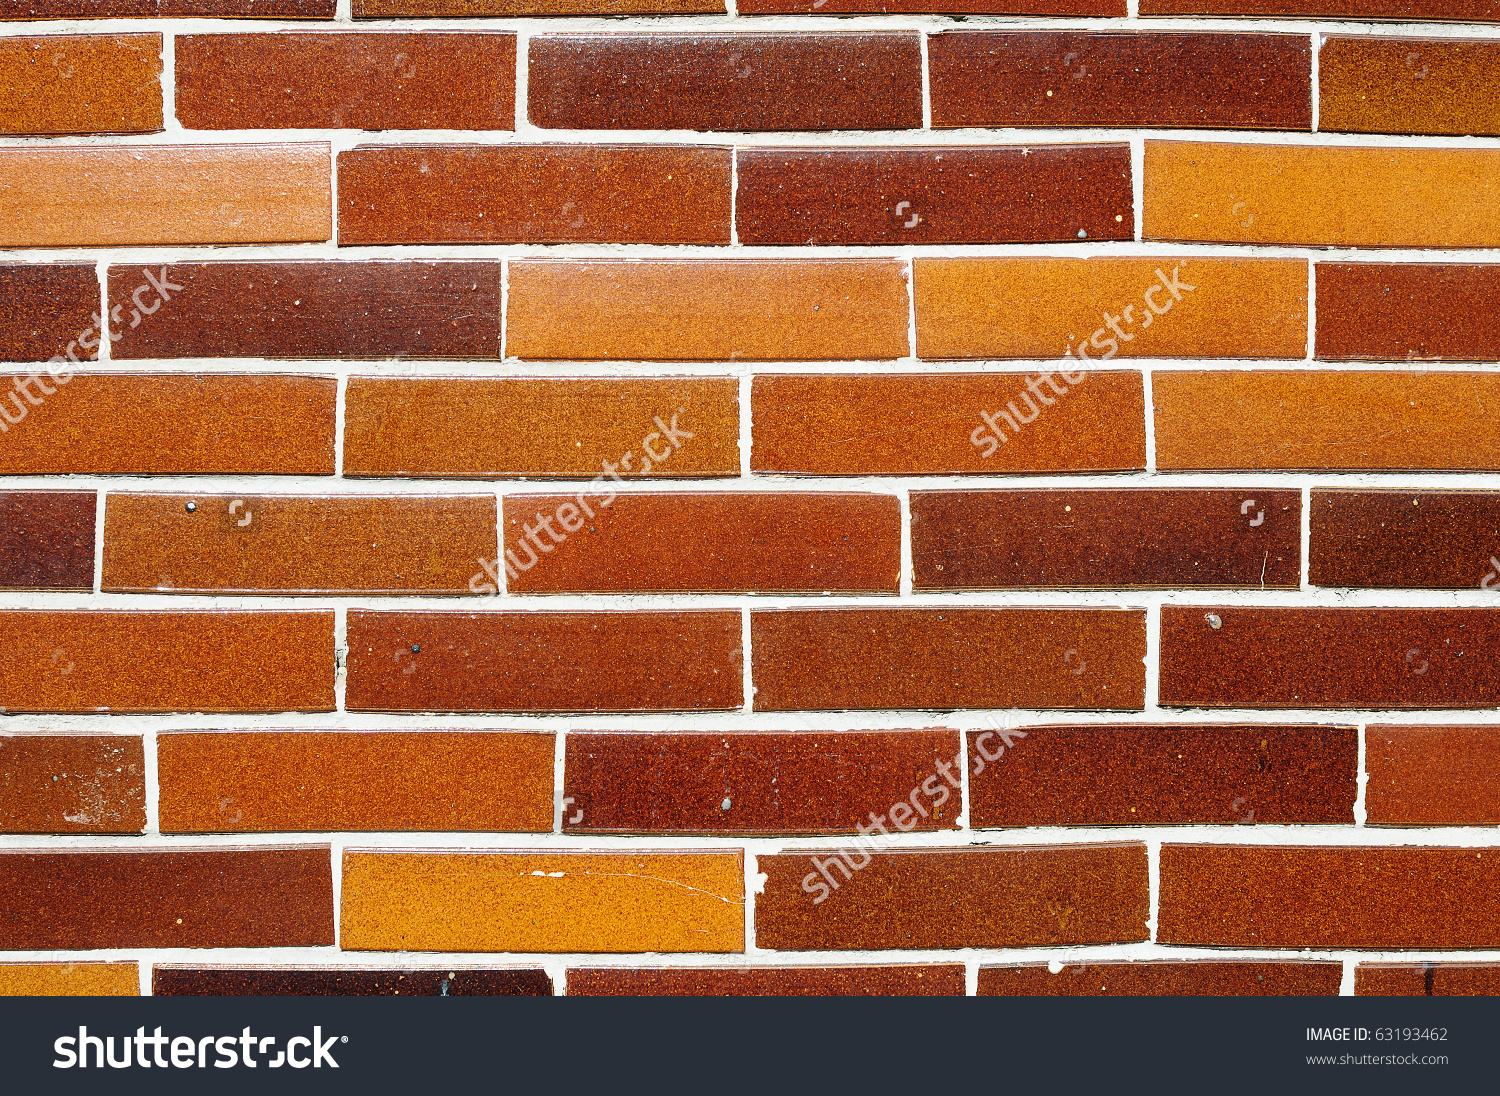 Fragment Of Wall Built Out Of Terracotta Bricks Stock Photo.